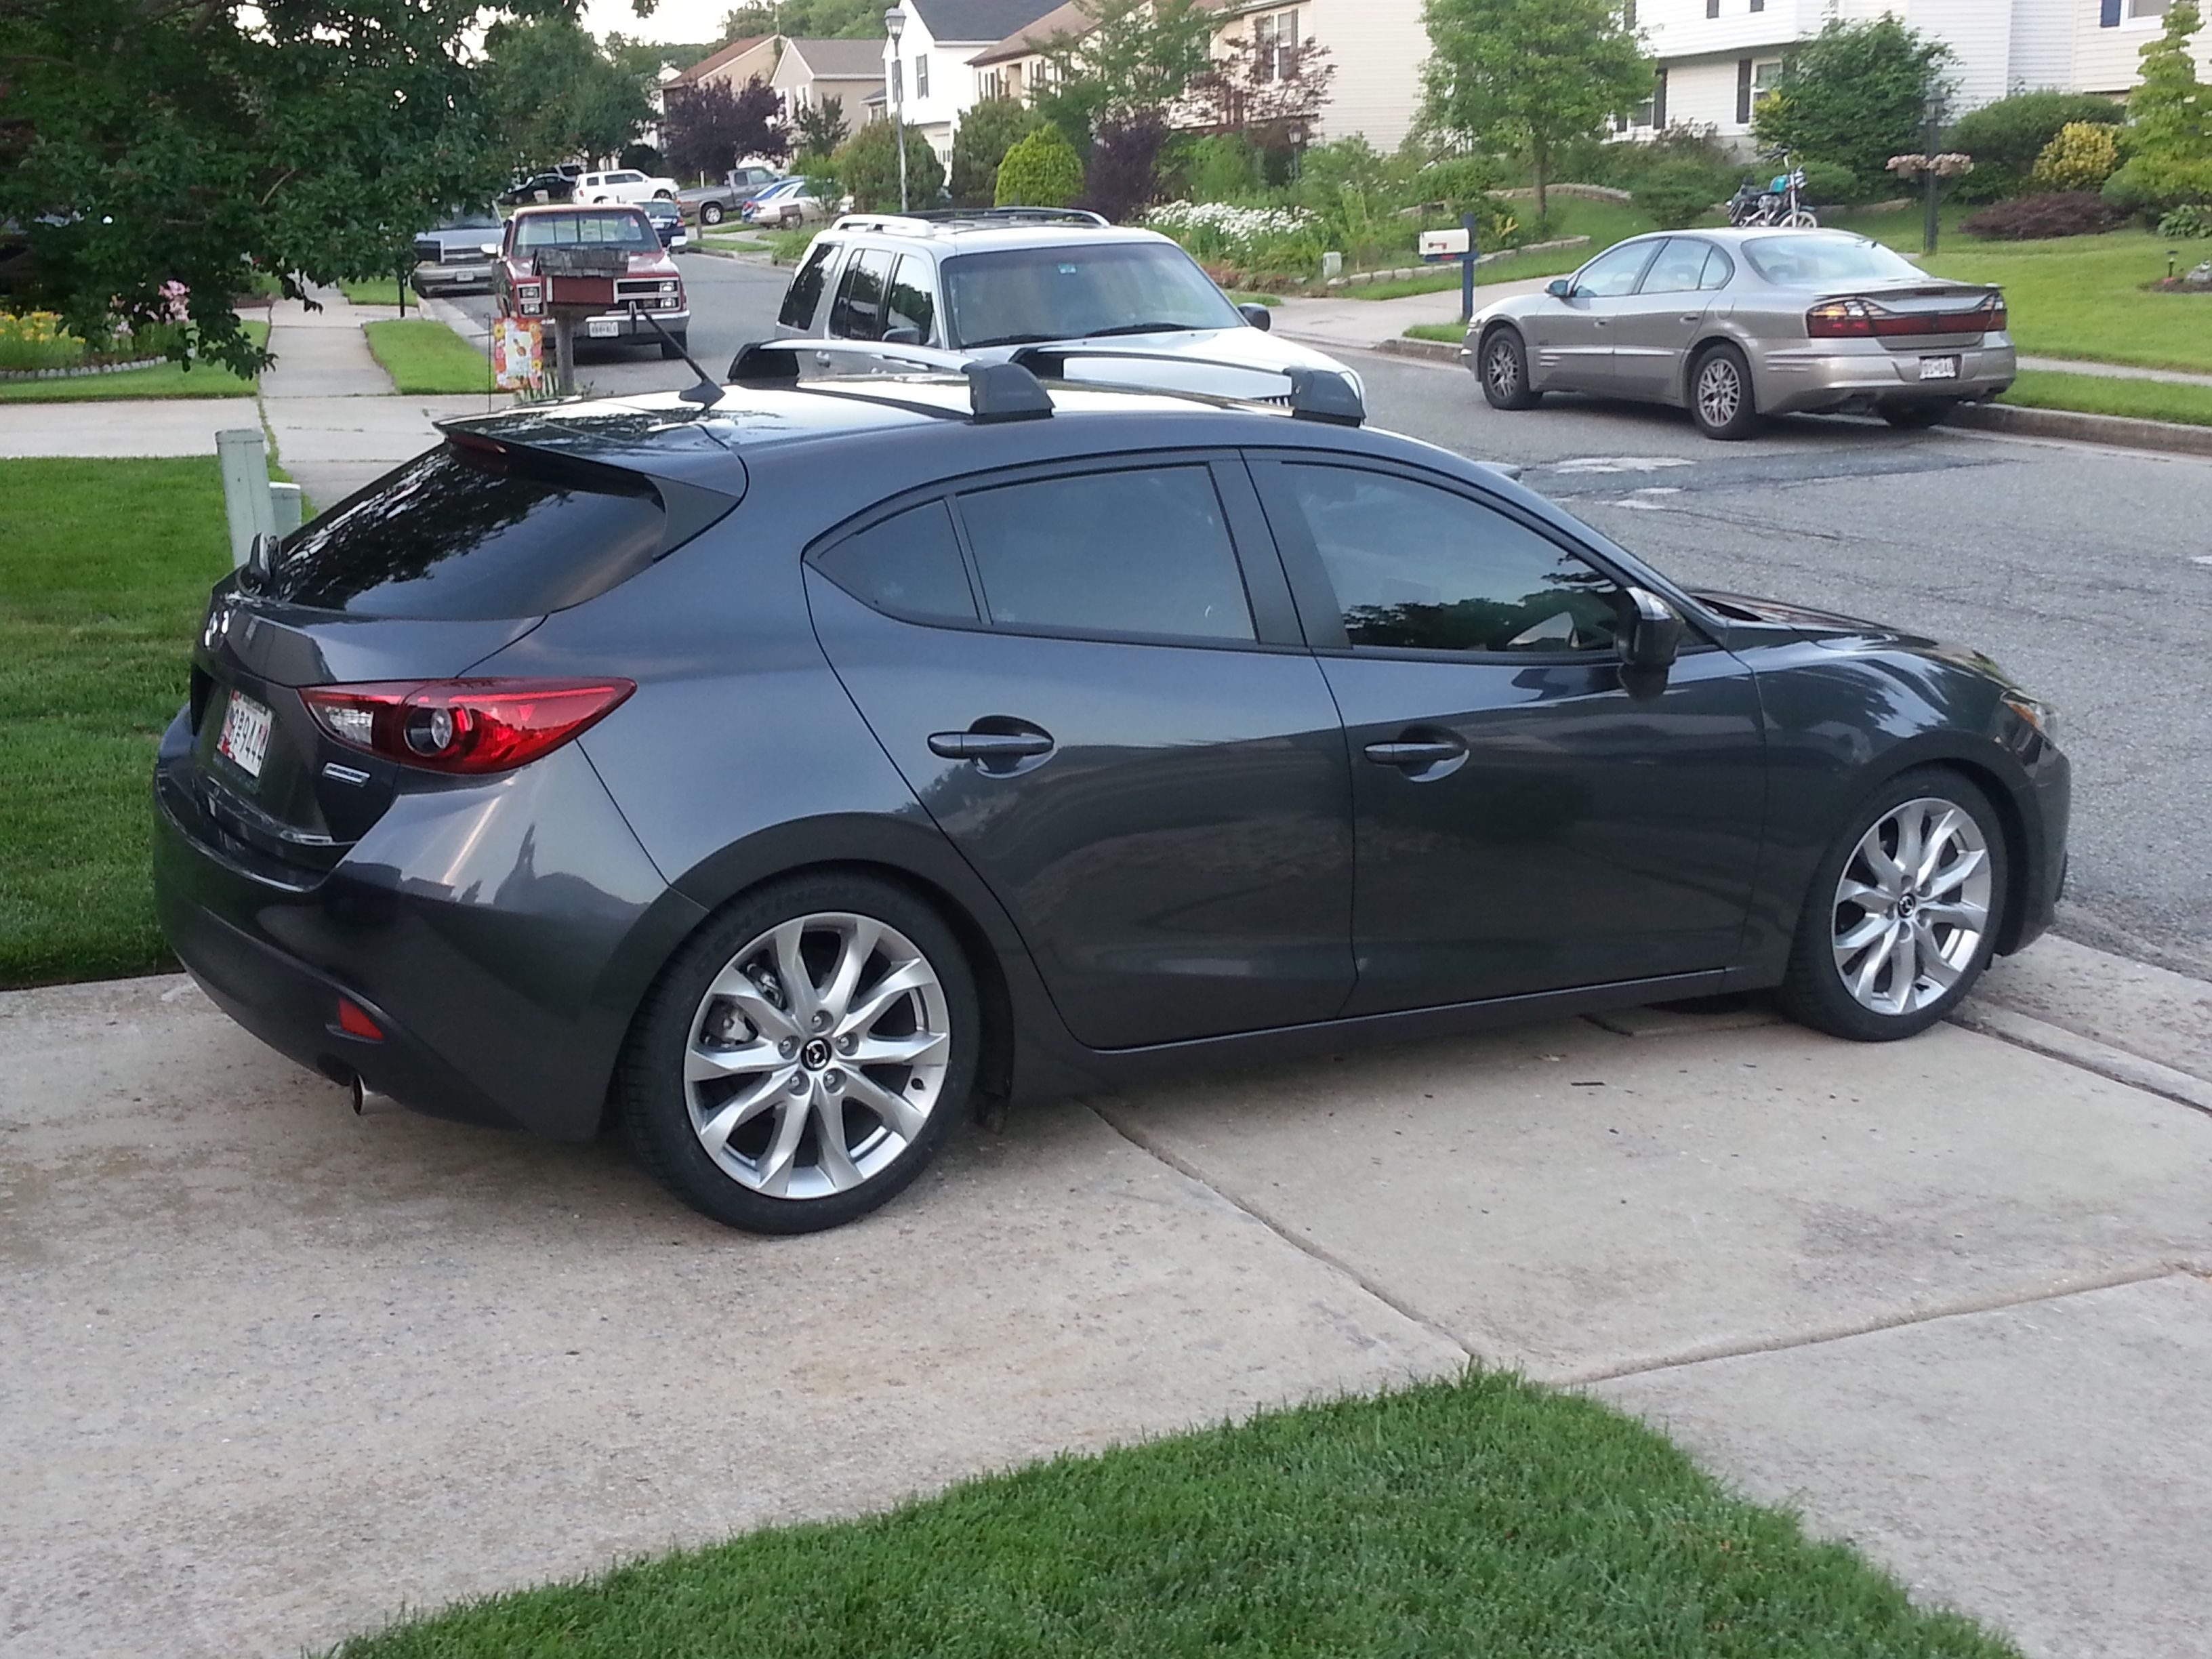 Roof Racks for my Mazda3